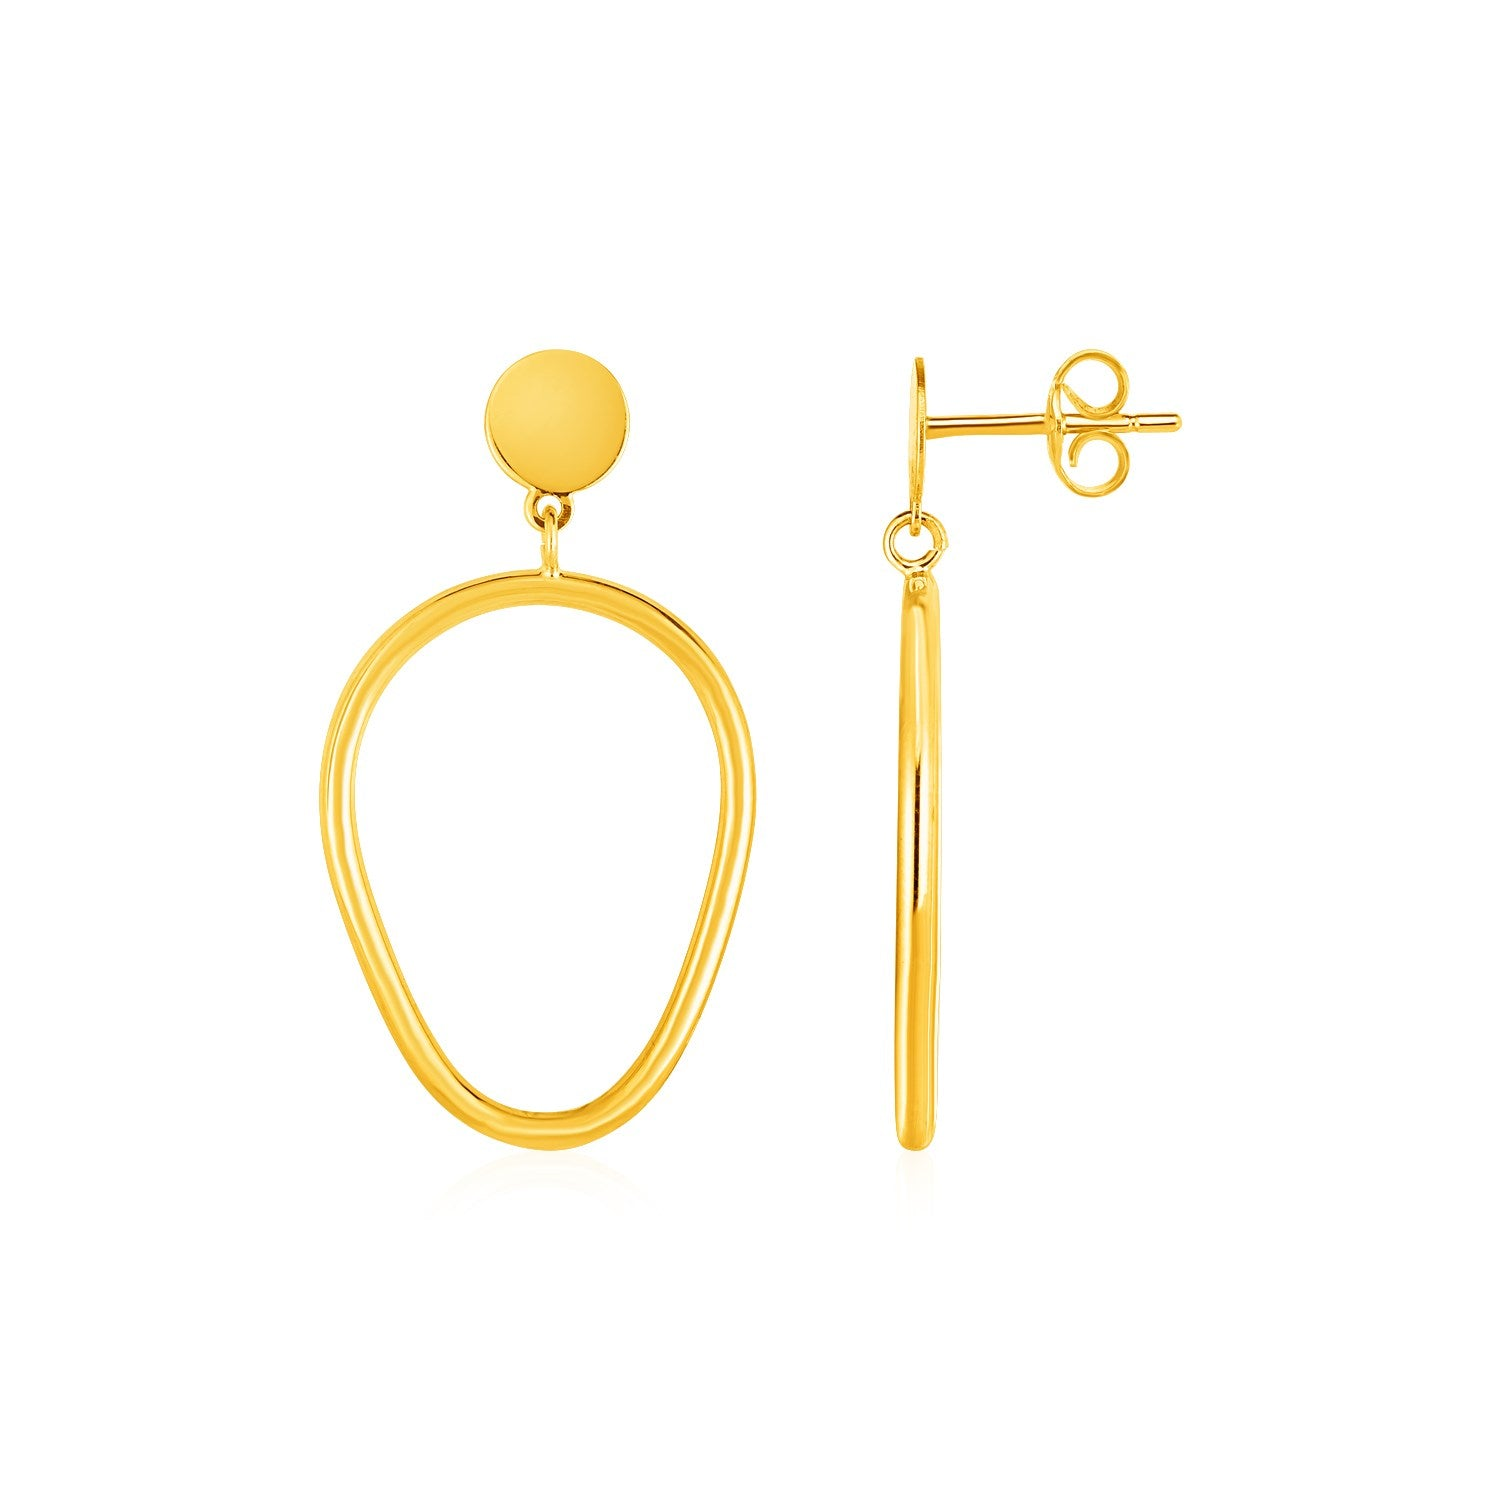 Shiny Pear Shaped Drop Earrings in 14k Yellow Gold